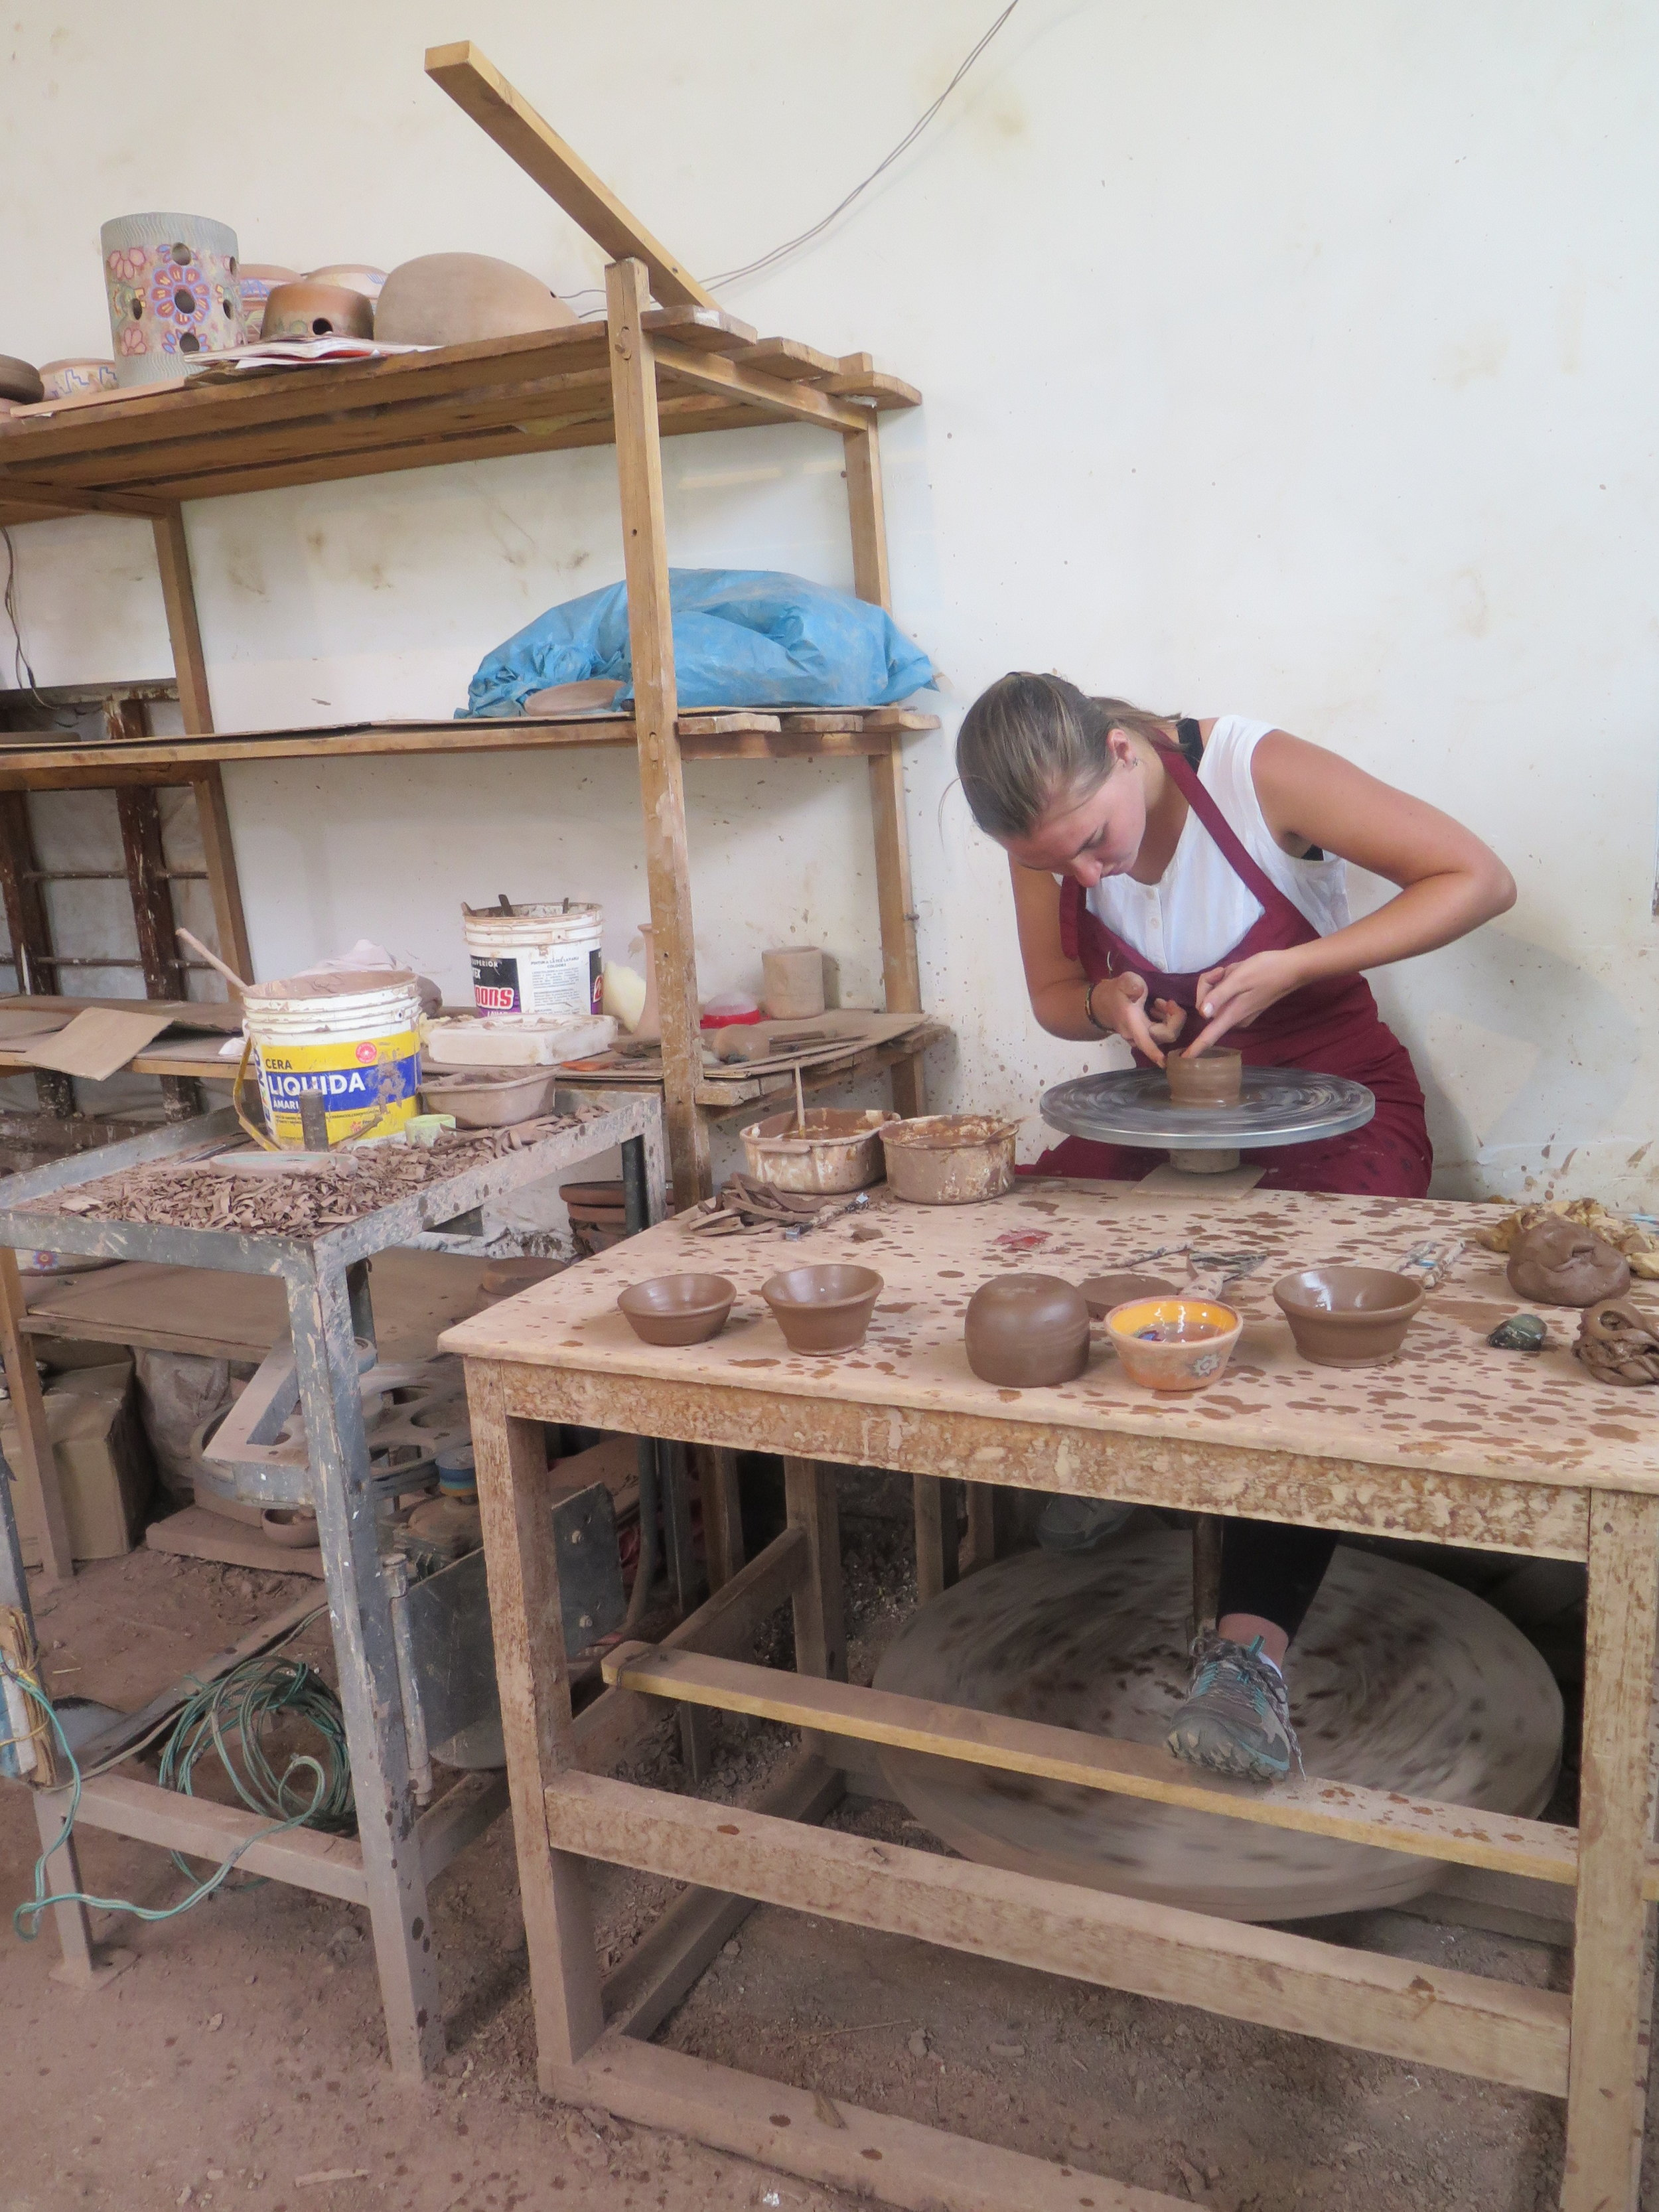 This afternoon we have the opportunity to experience some workshops. The ceremics demonstration is a hands-on experience where we learn local traditonal techniques and the opportunity to see some of the finished products by local potter Bernadino. -